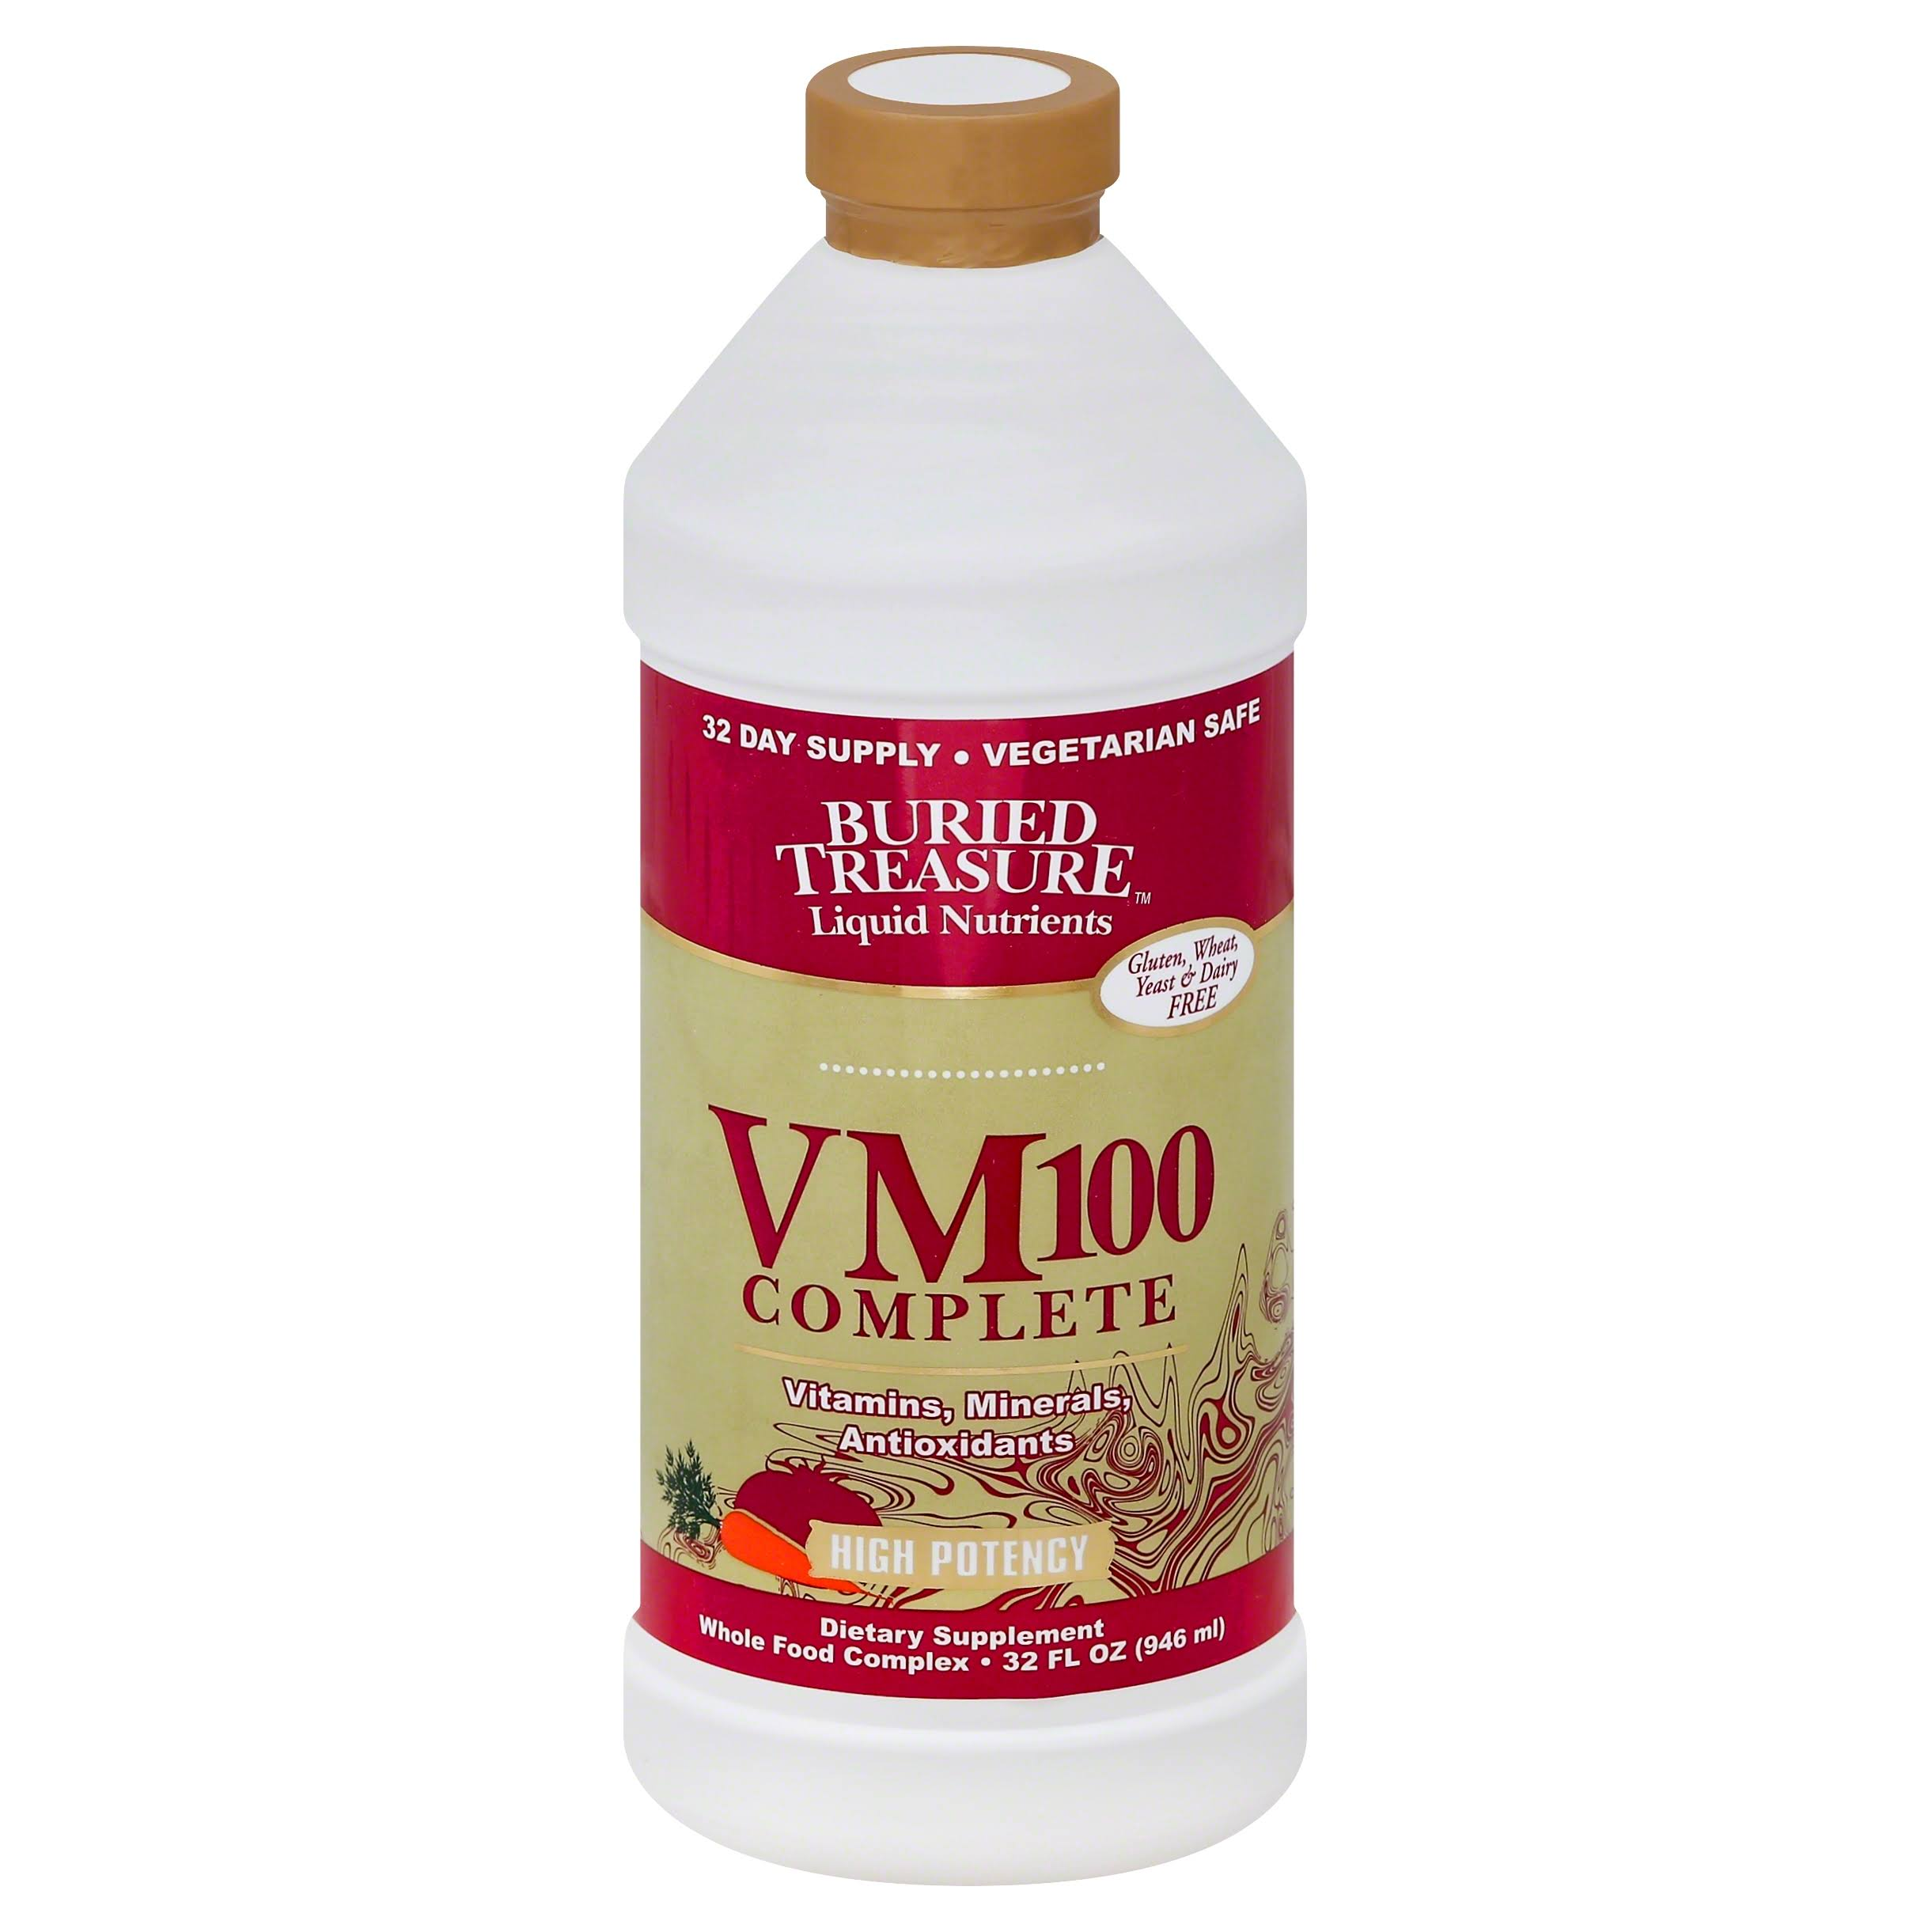 Buried Treasure VM-100 Complete Multivitamin Liquid - 32 fl oz bottle